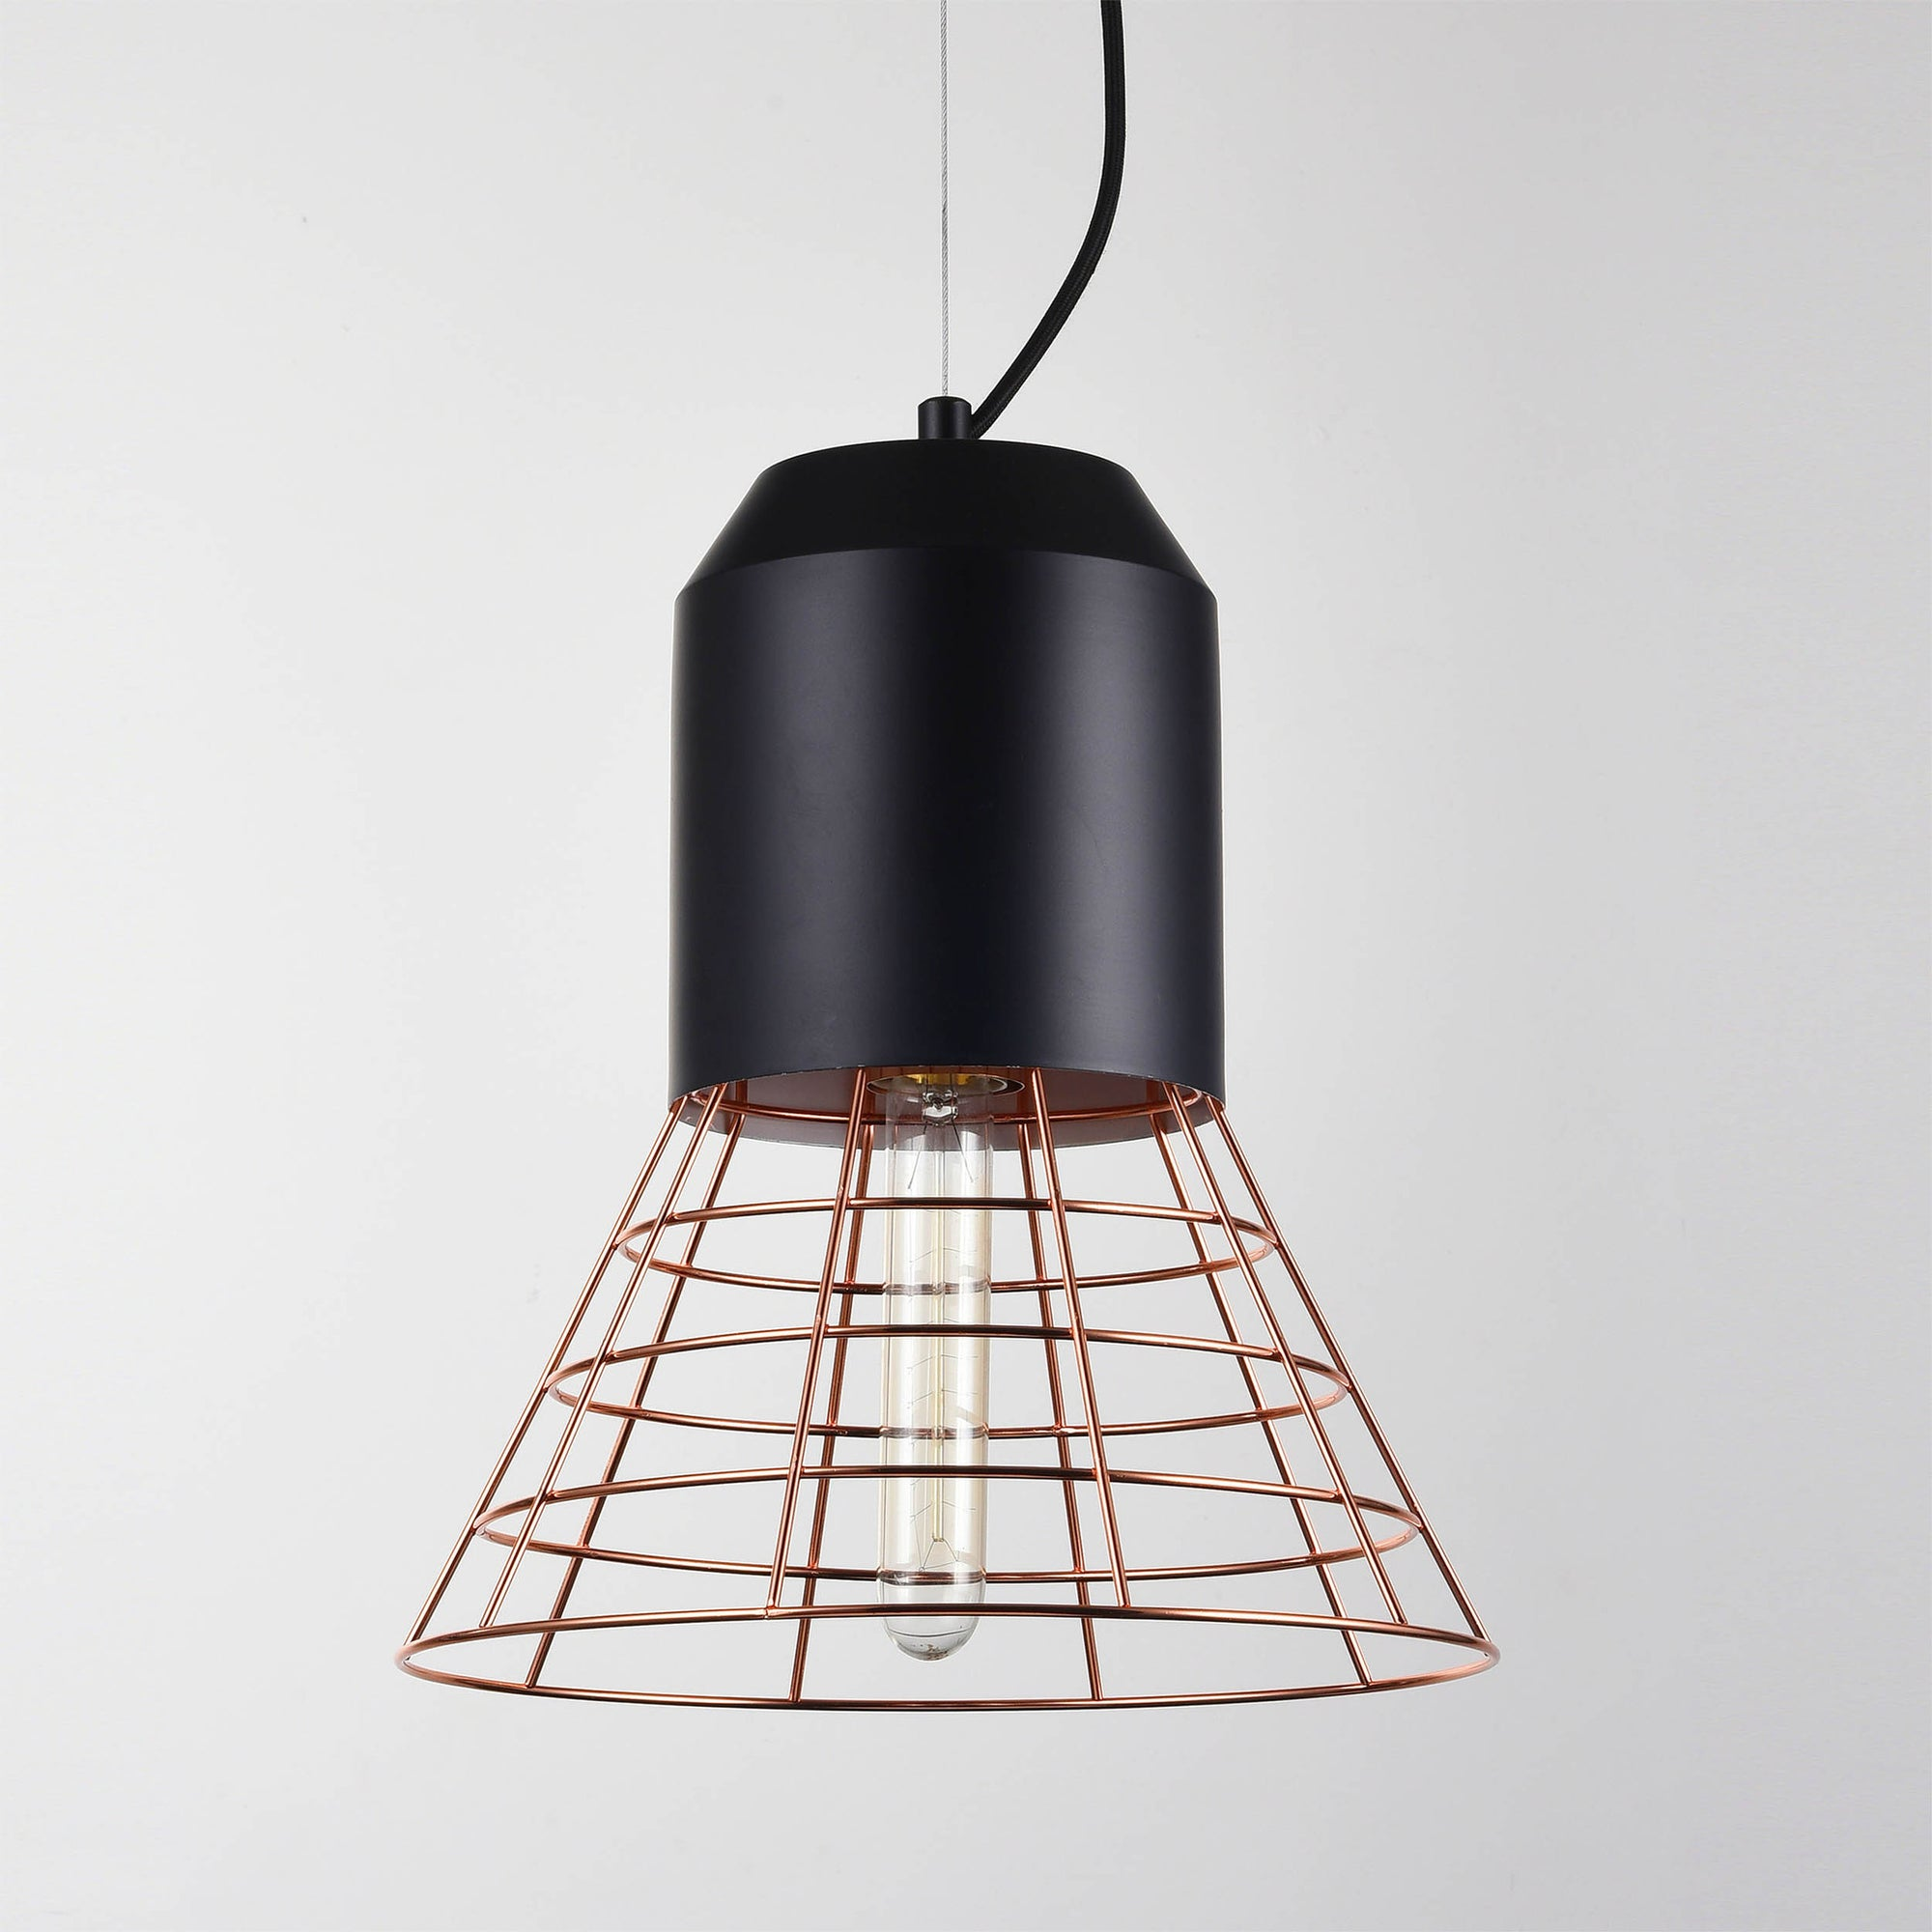 products with lamp di andante preview linea pendant bulb liara ed led industrial bn lifestyle